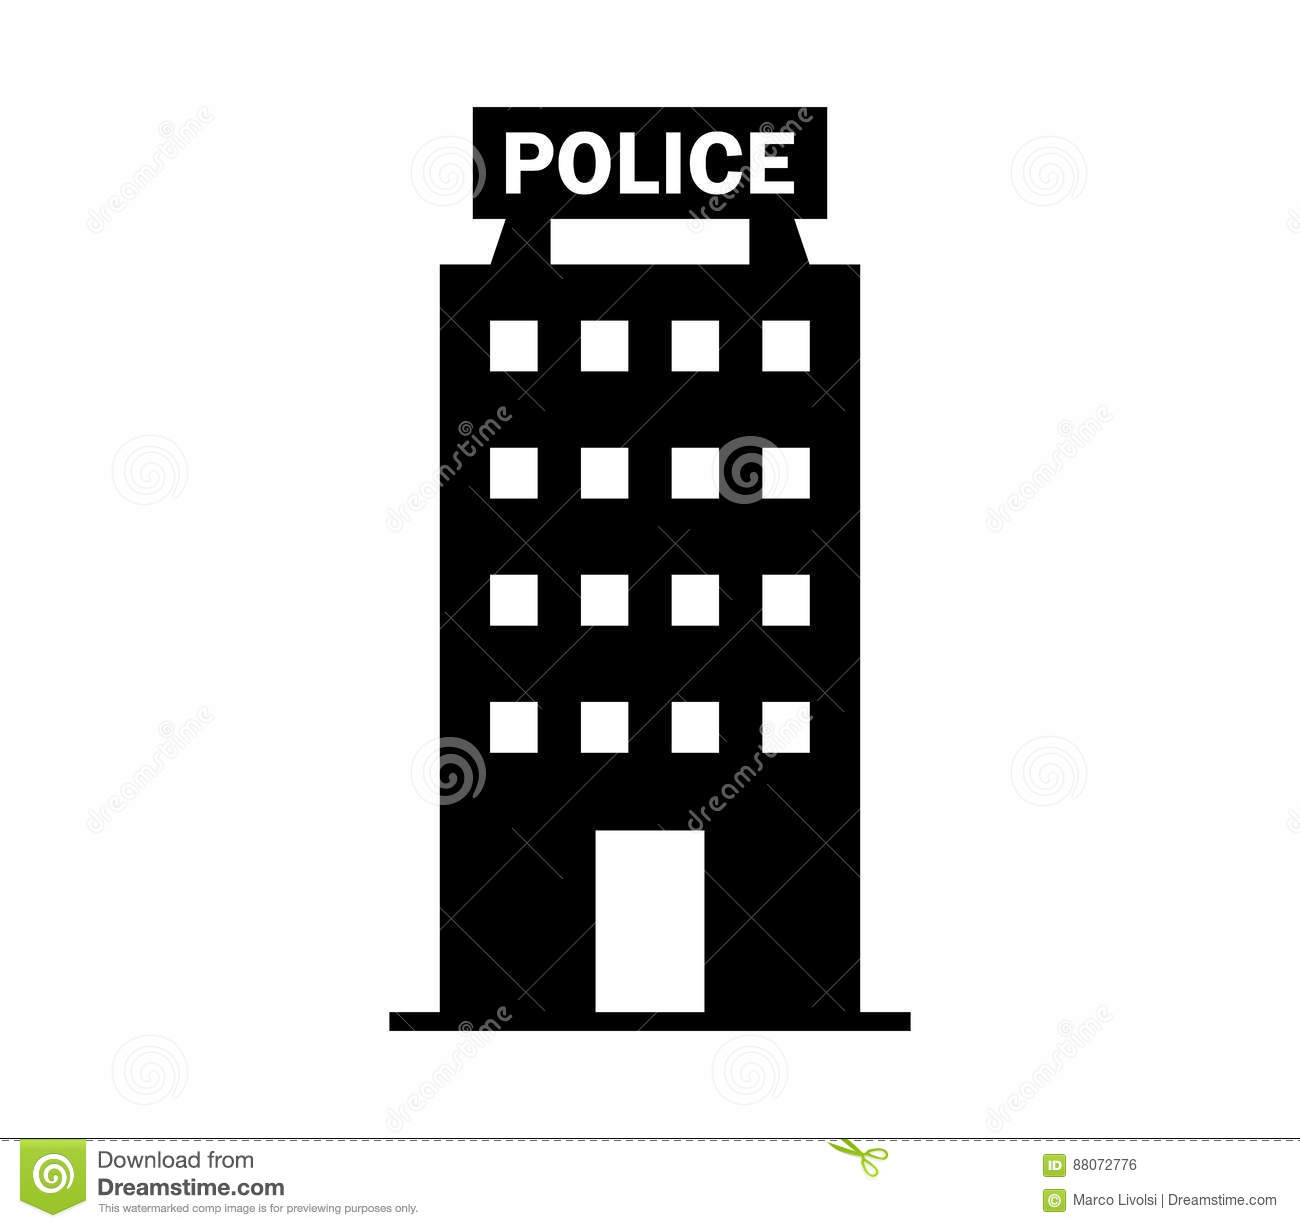 https://thumbs.dreamstime.com/z/police-station-icon-illustrated-white-background-88072776.jpg Police